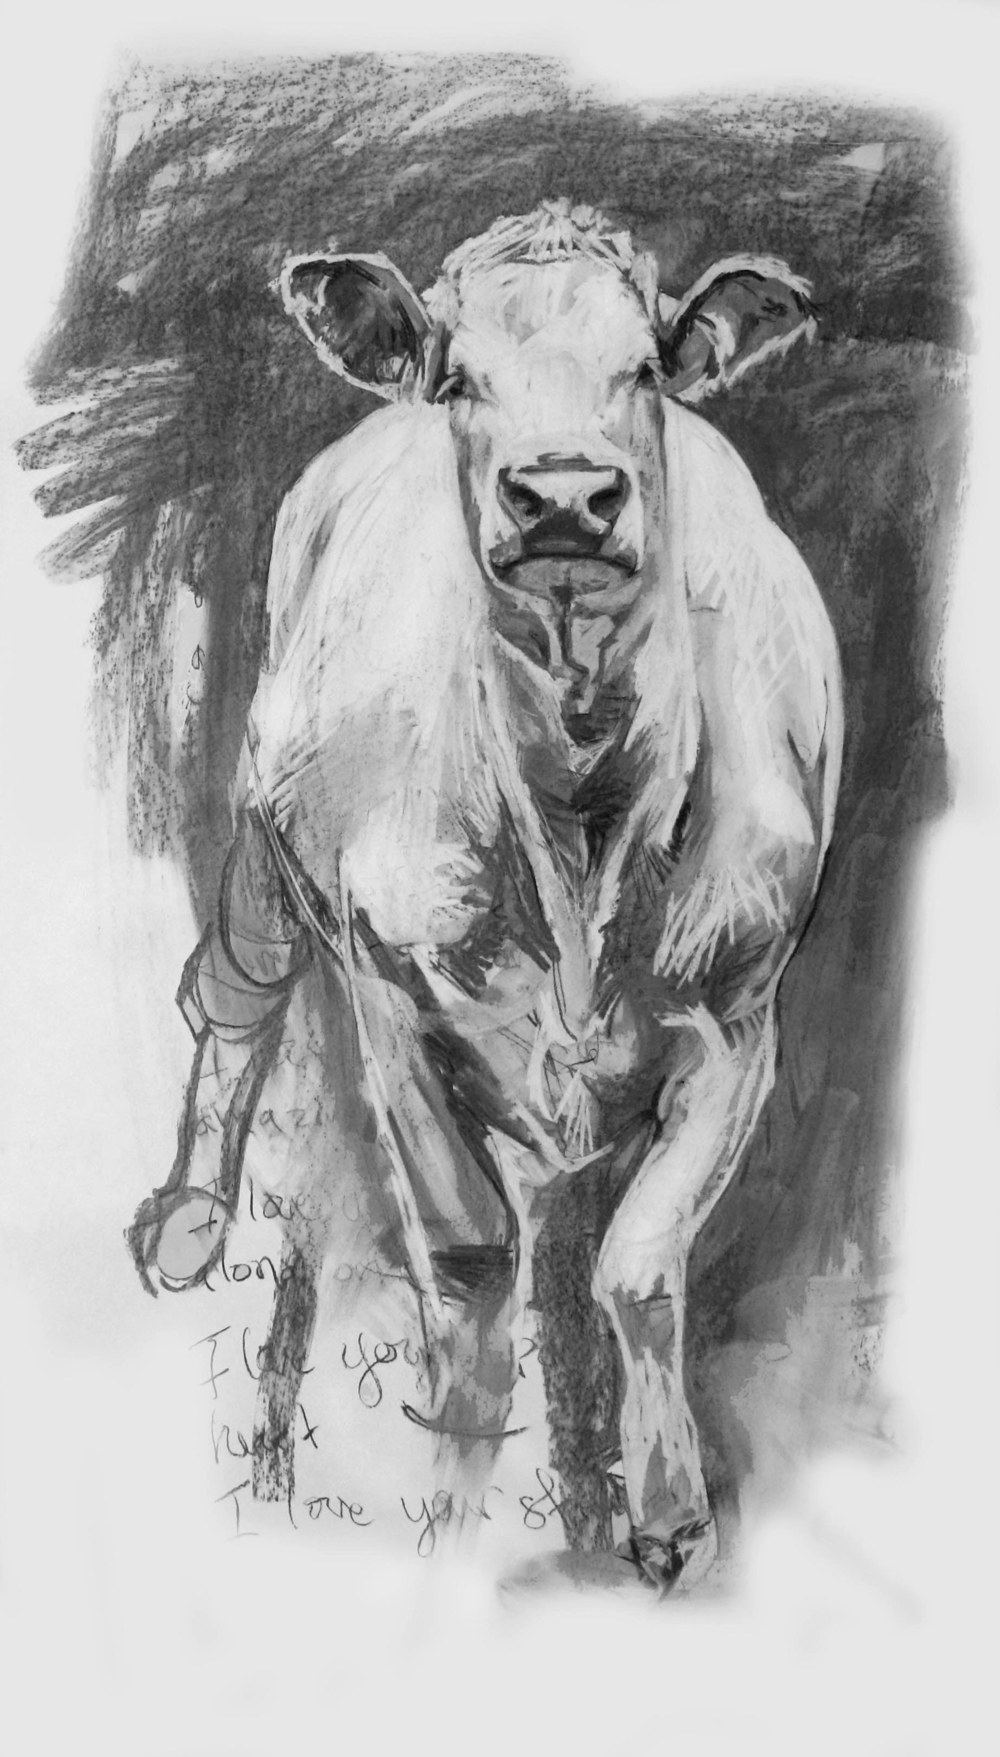 Stuart, Charcoal on Paper, 60x42 inches, 2009